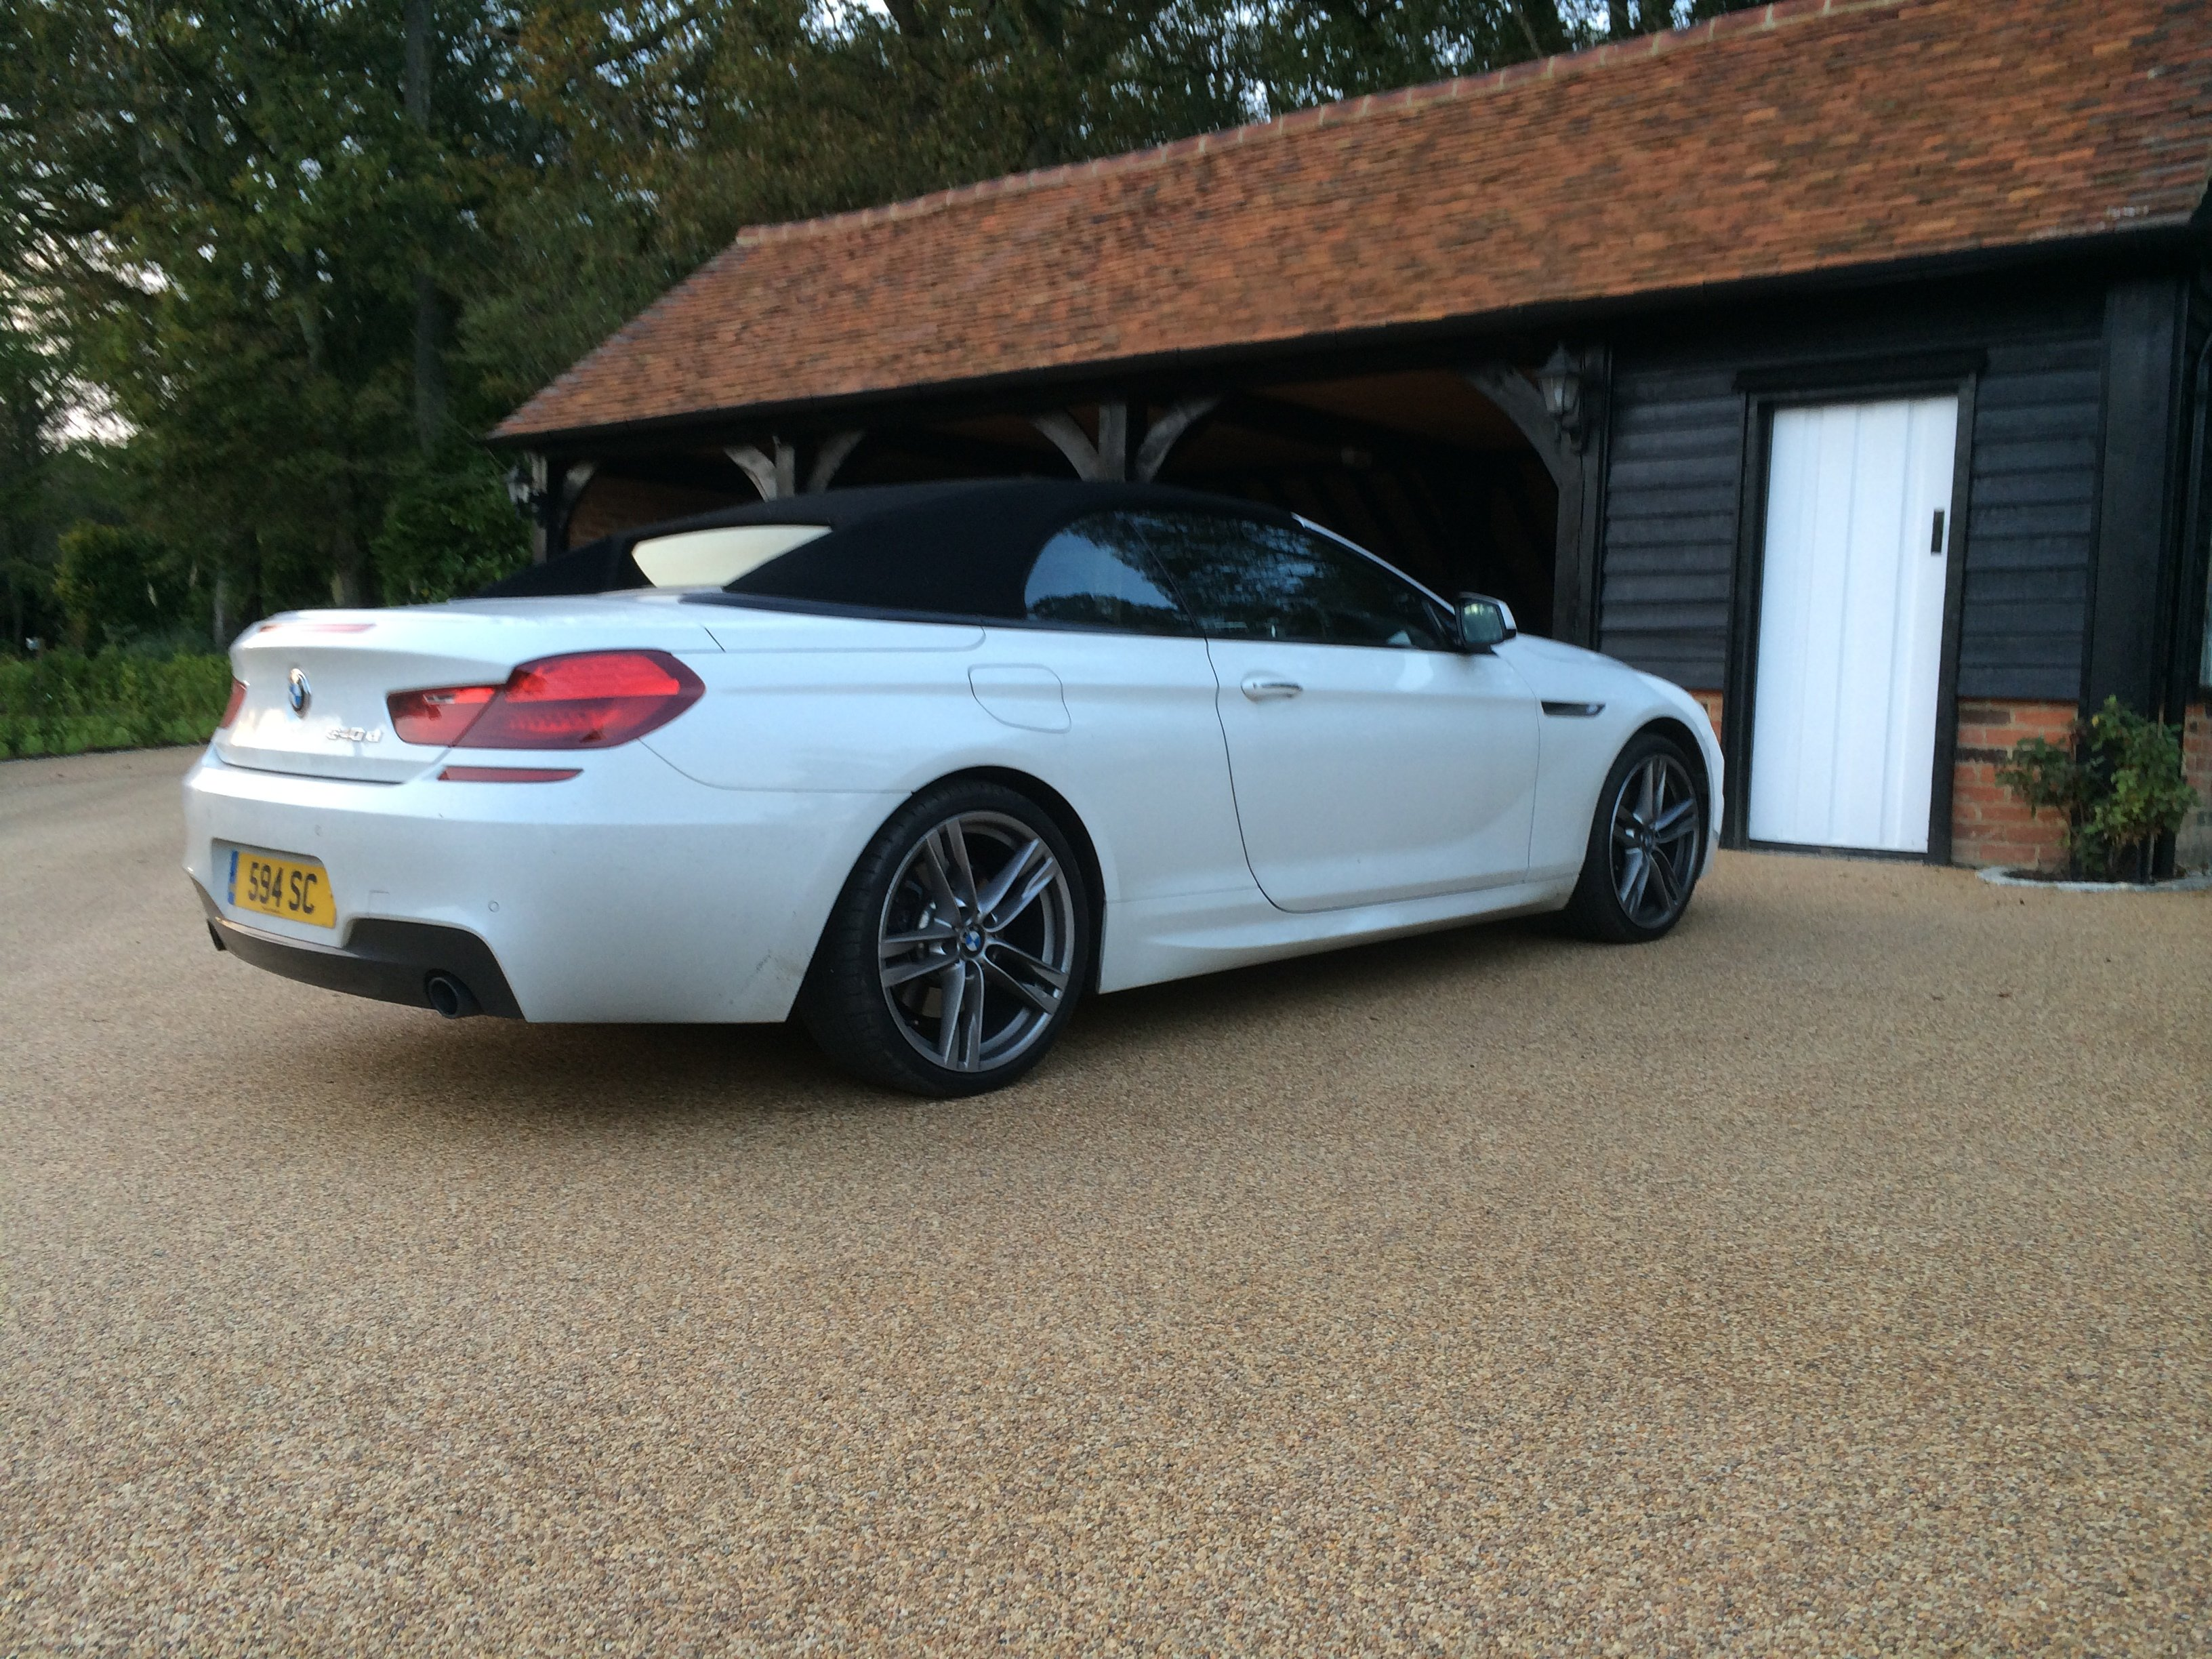 resin paved garage approach with white BMW car